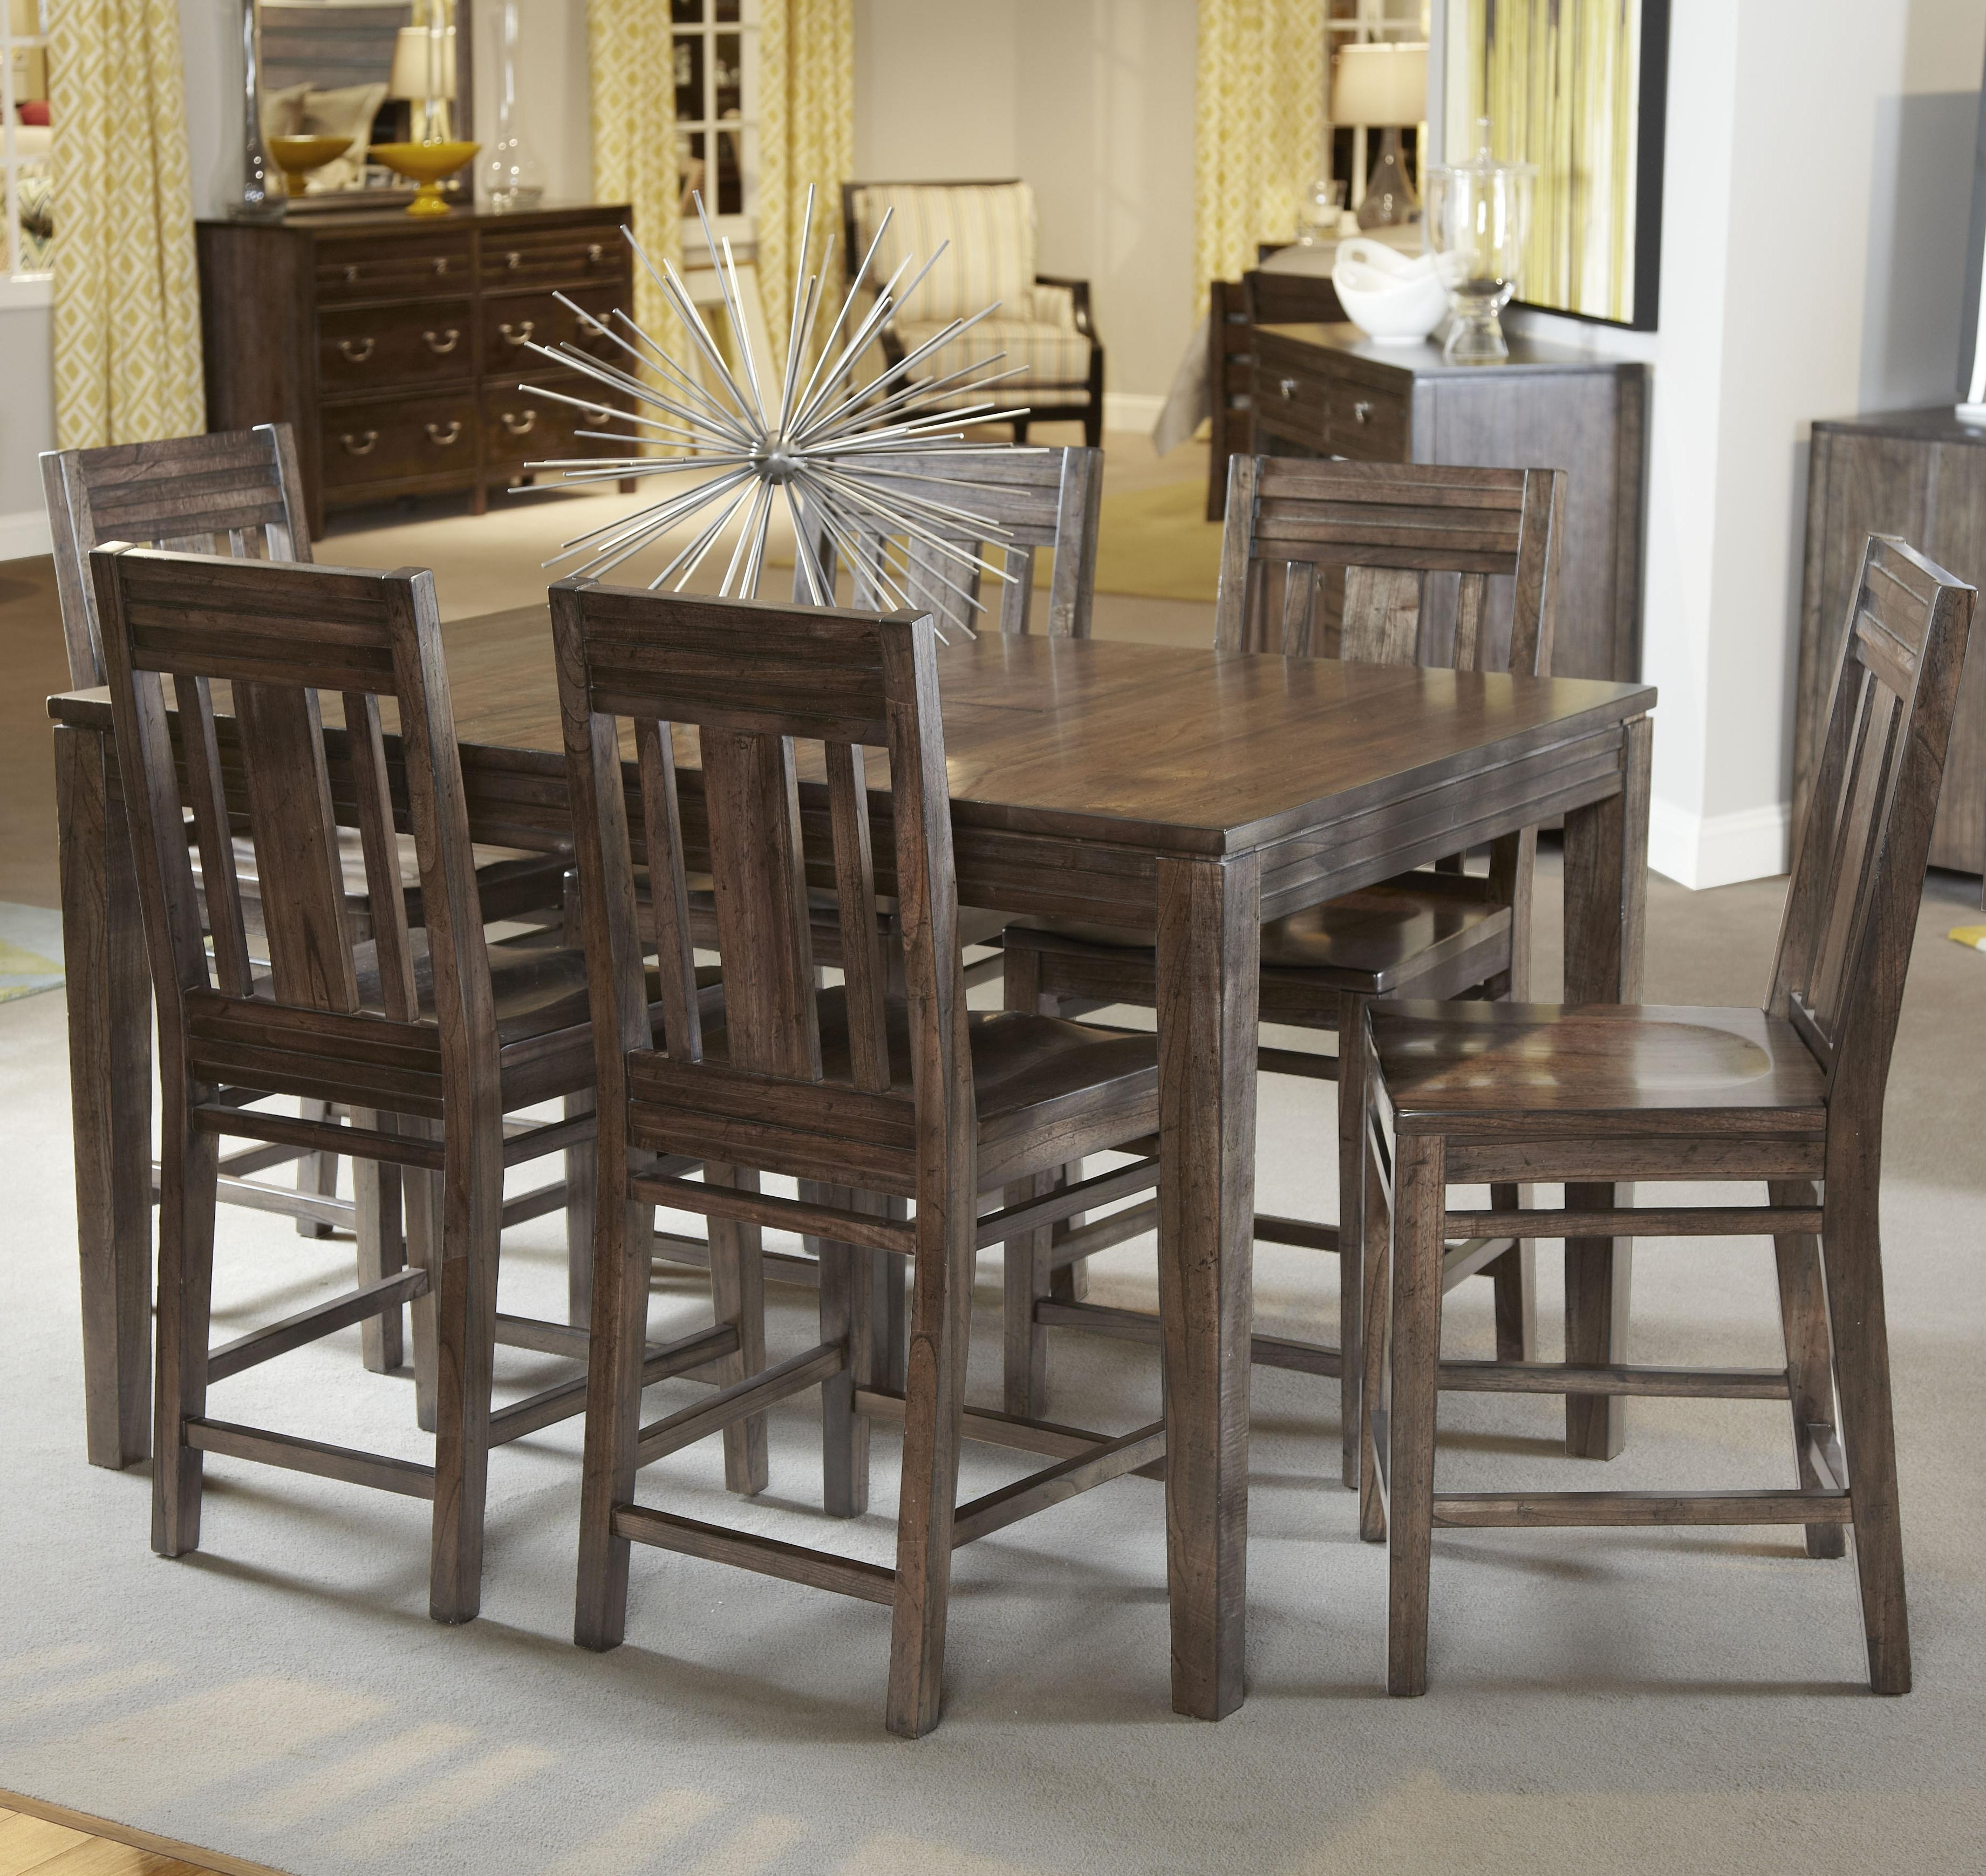 Kincaid Furniture Montreat Seven Piece Casual Counter Height Dining With Regard To Recent Craftsman 7 Piece Rectangle Extension Dining Sets With Side Chairs (View 5 of 20)